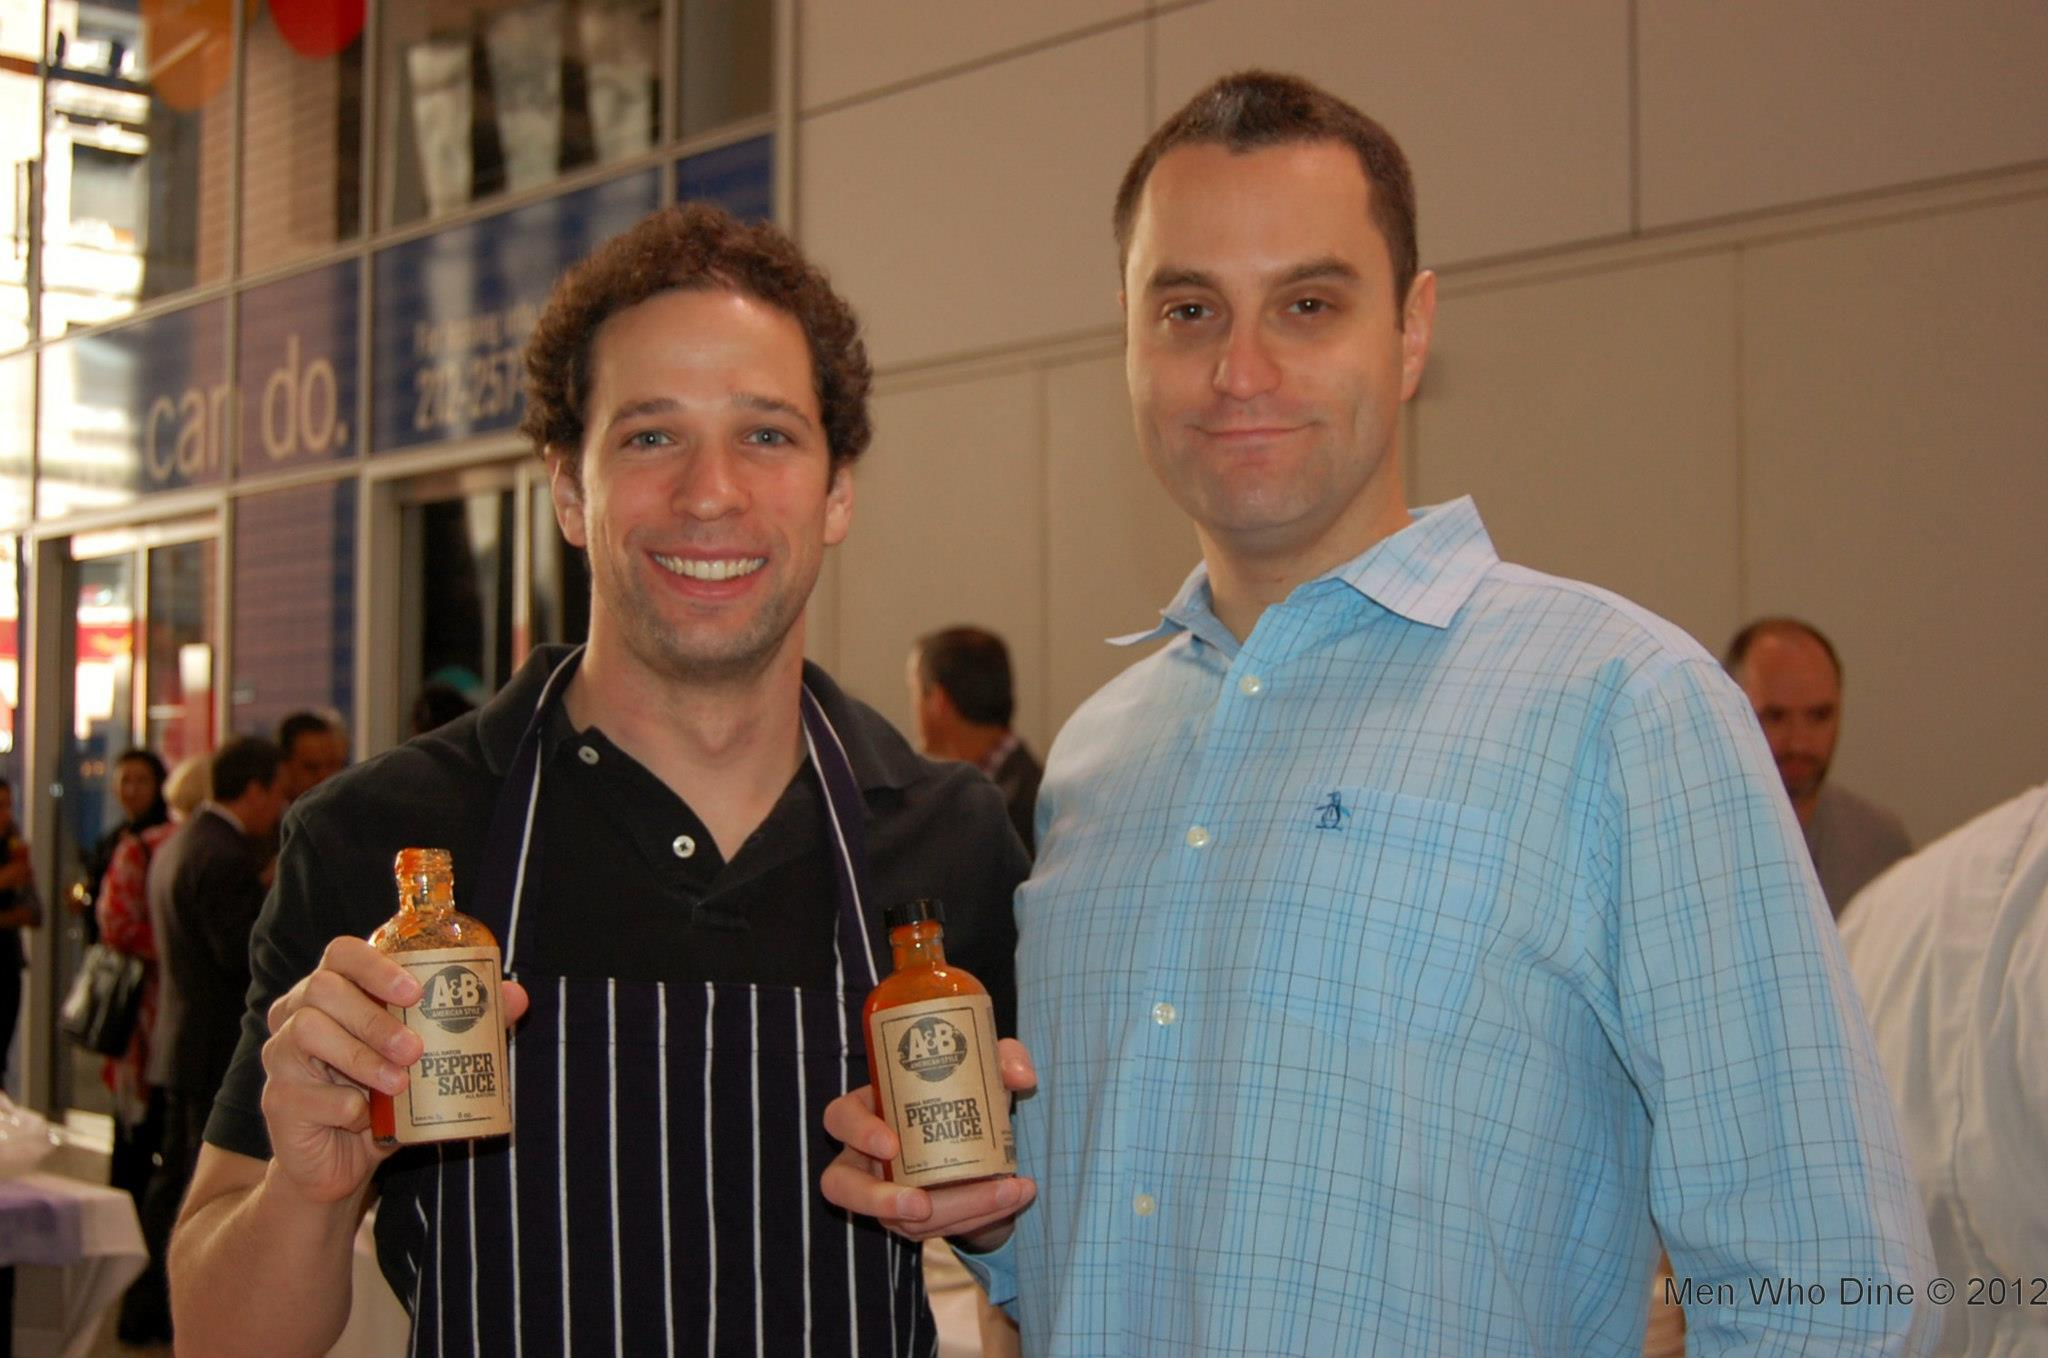 Brian Ballan and Ariel Fliman, life-long friends and co-founders of A&B American Style Pepper Sauces.